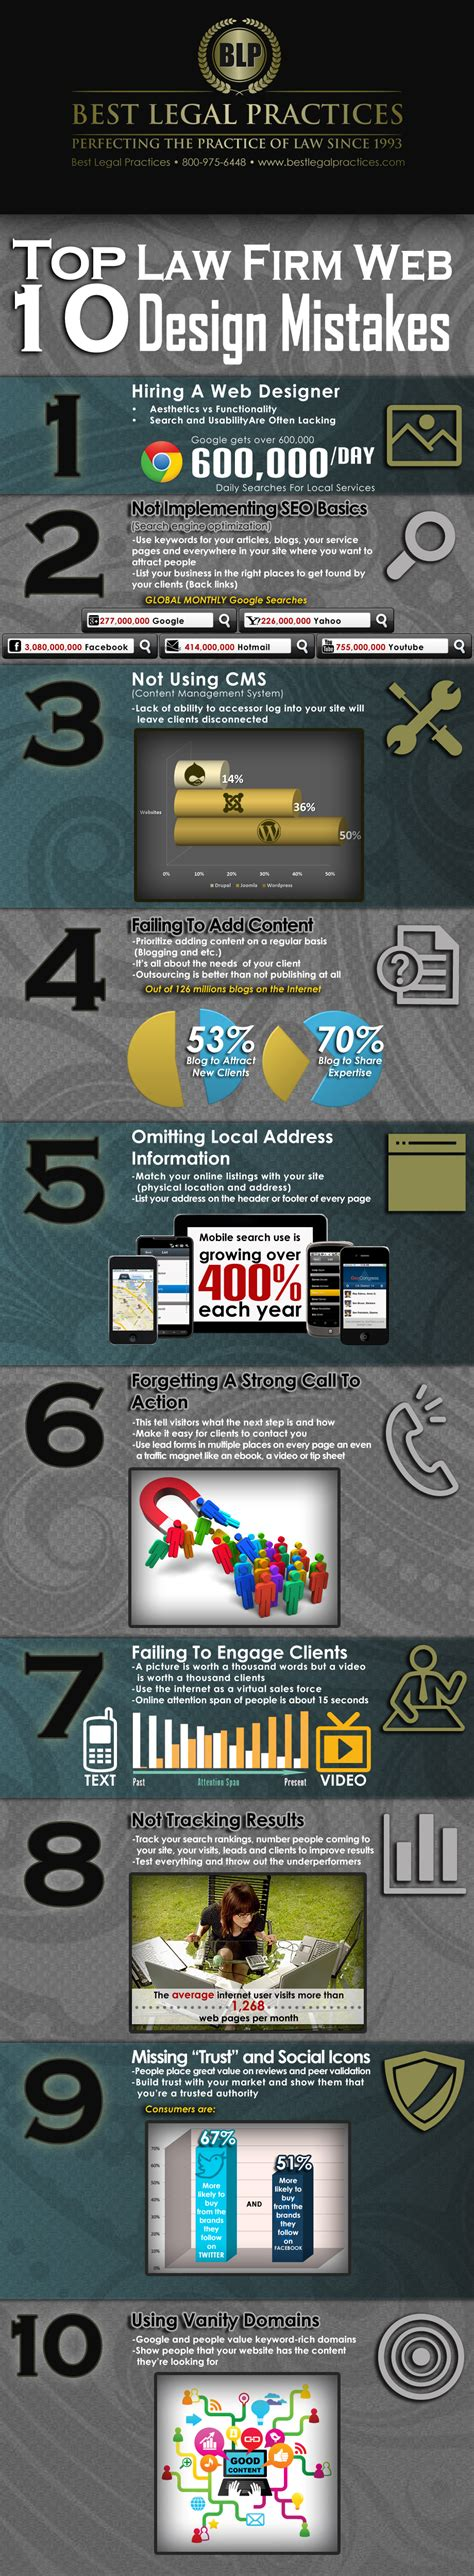 firm web designer top 10 firm web design mistakes infographic best